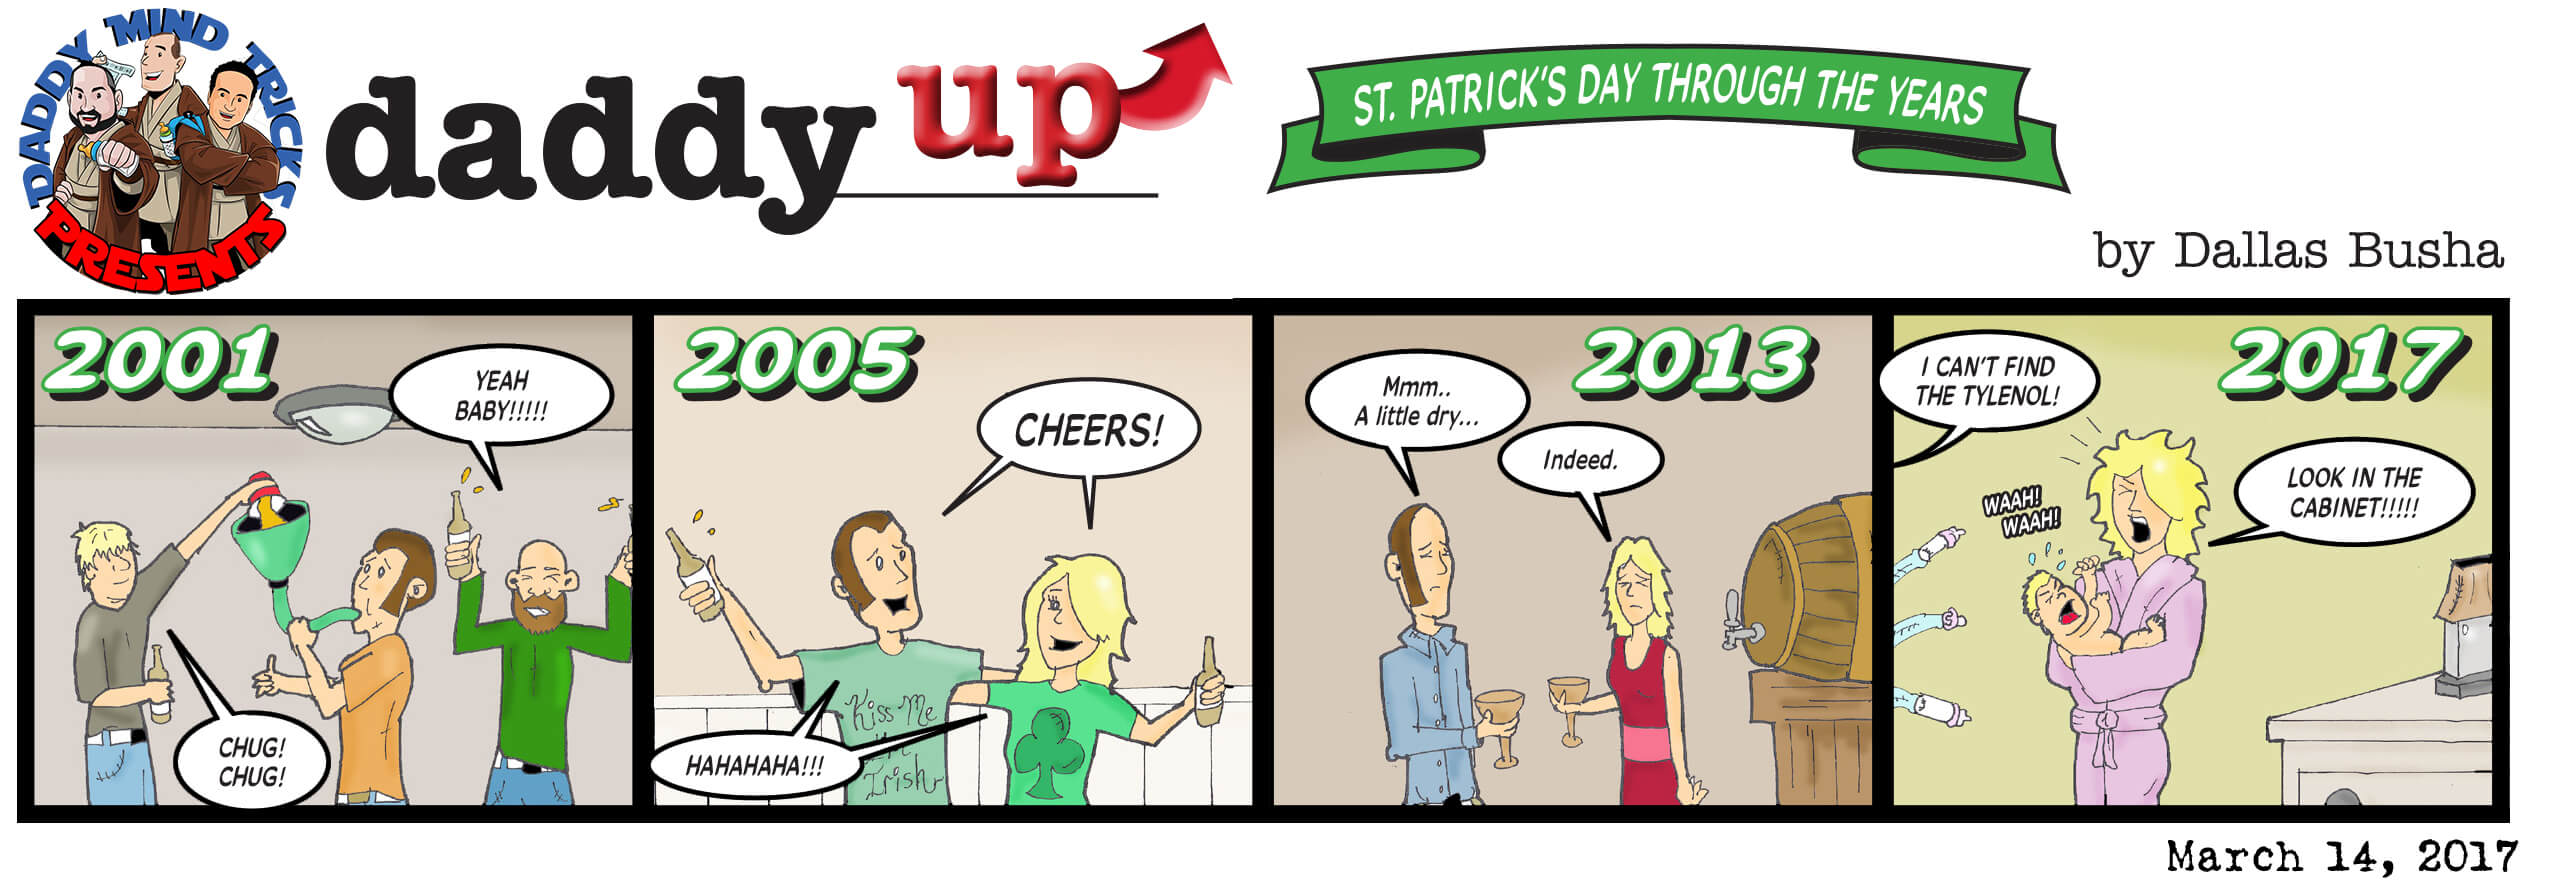 St. Patrick's Day Throughout the Years